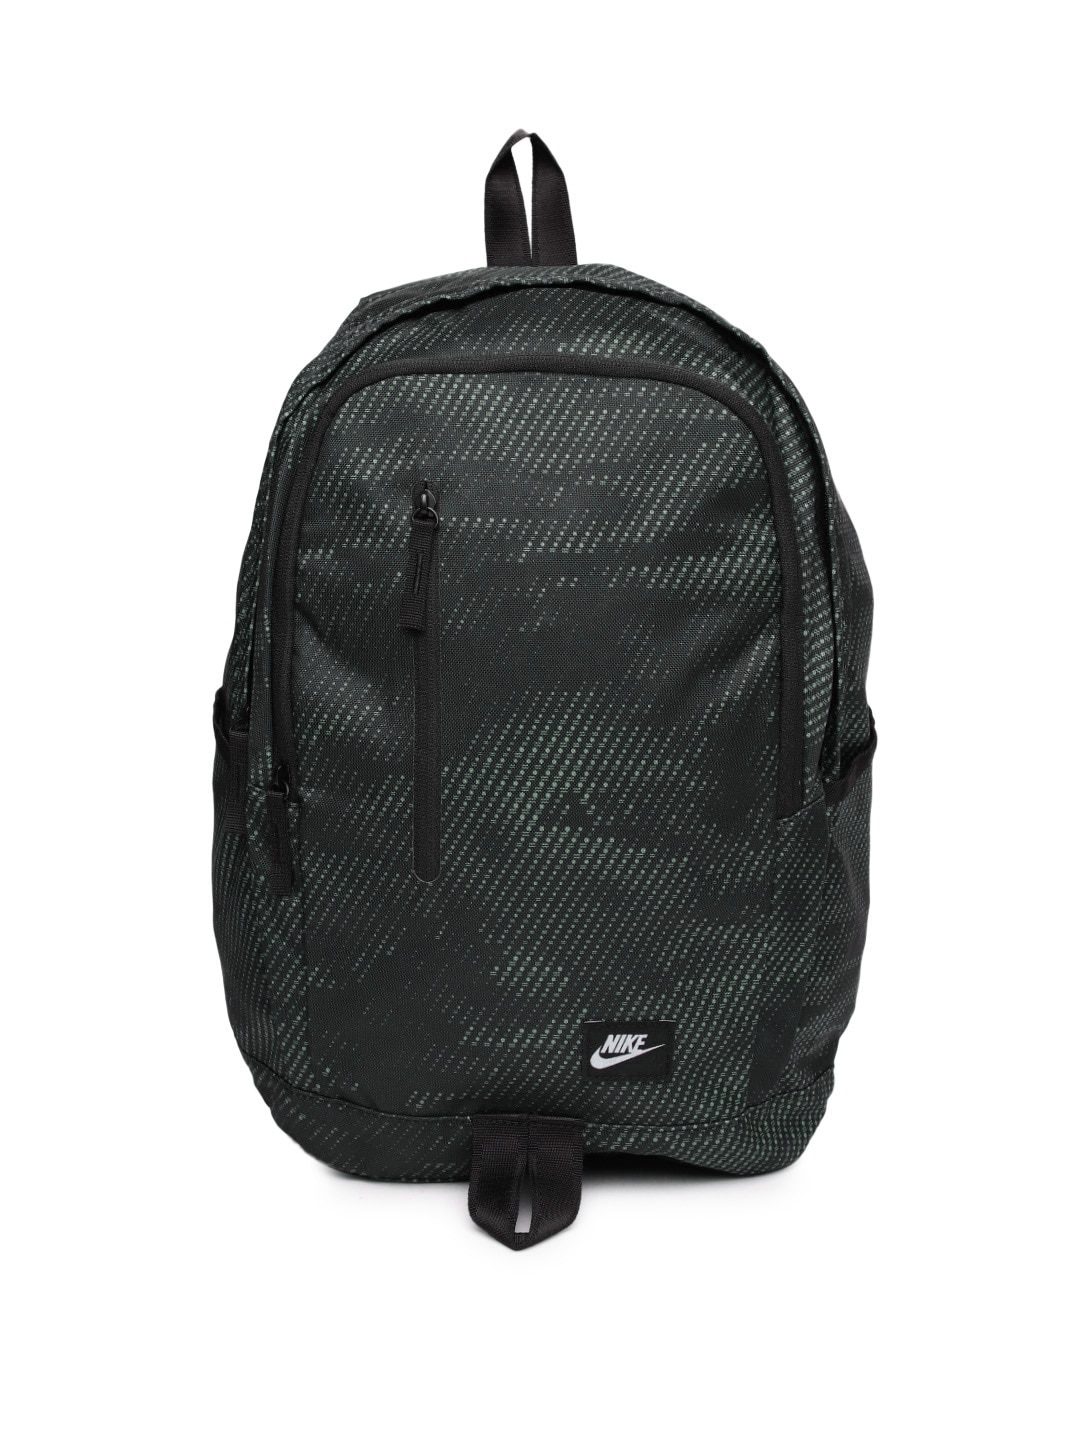 3f1dbbf49527 Nike So Aks Backpacks Tote Bags - Buy Nike So Aks Backpacks Tote Bags online  in India